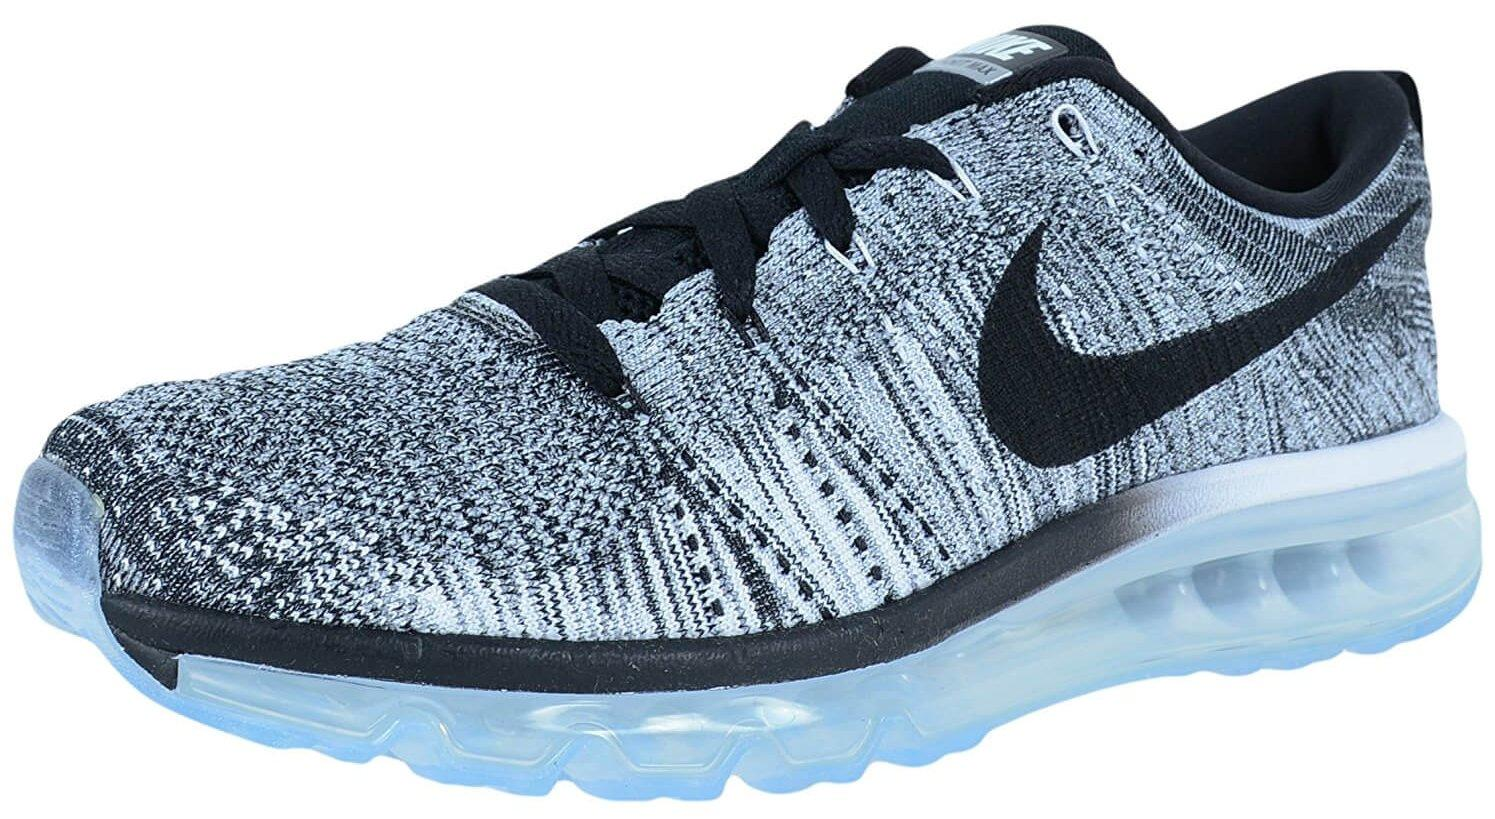 11d8aa0ec4 Nike Flyknit Air Max Review - Buy or Not in June 2019?